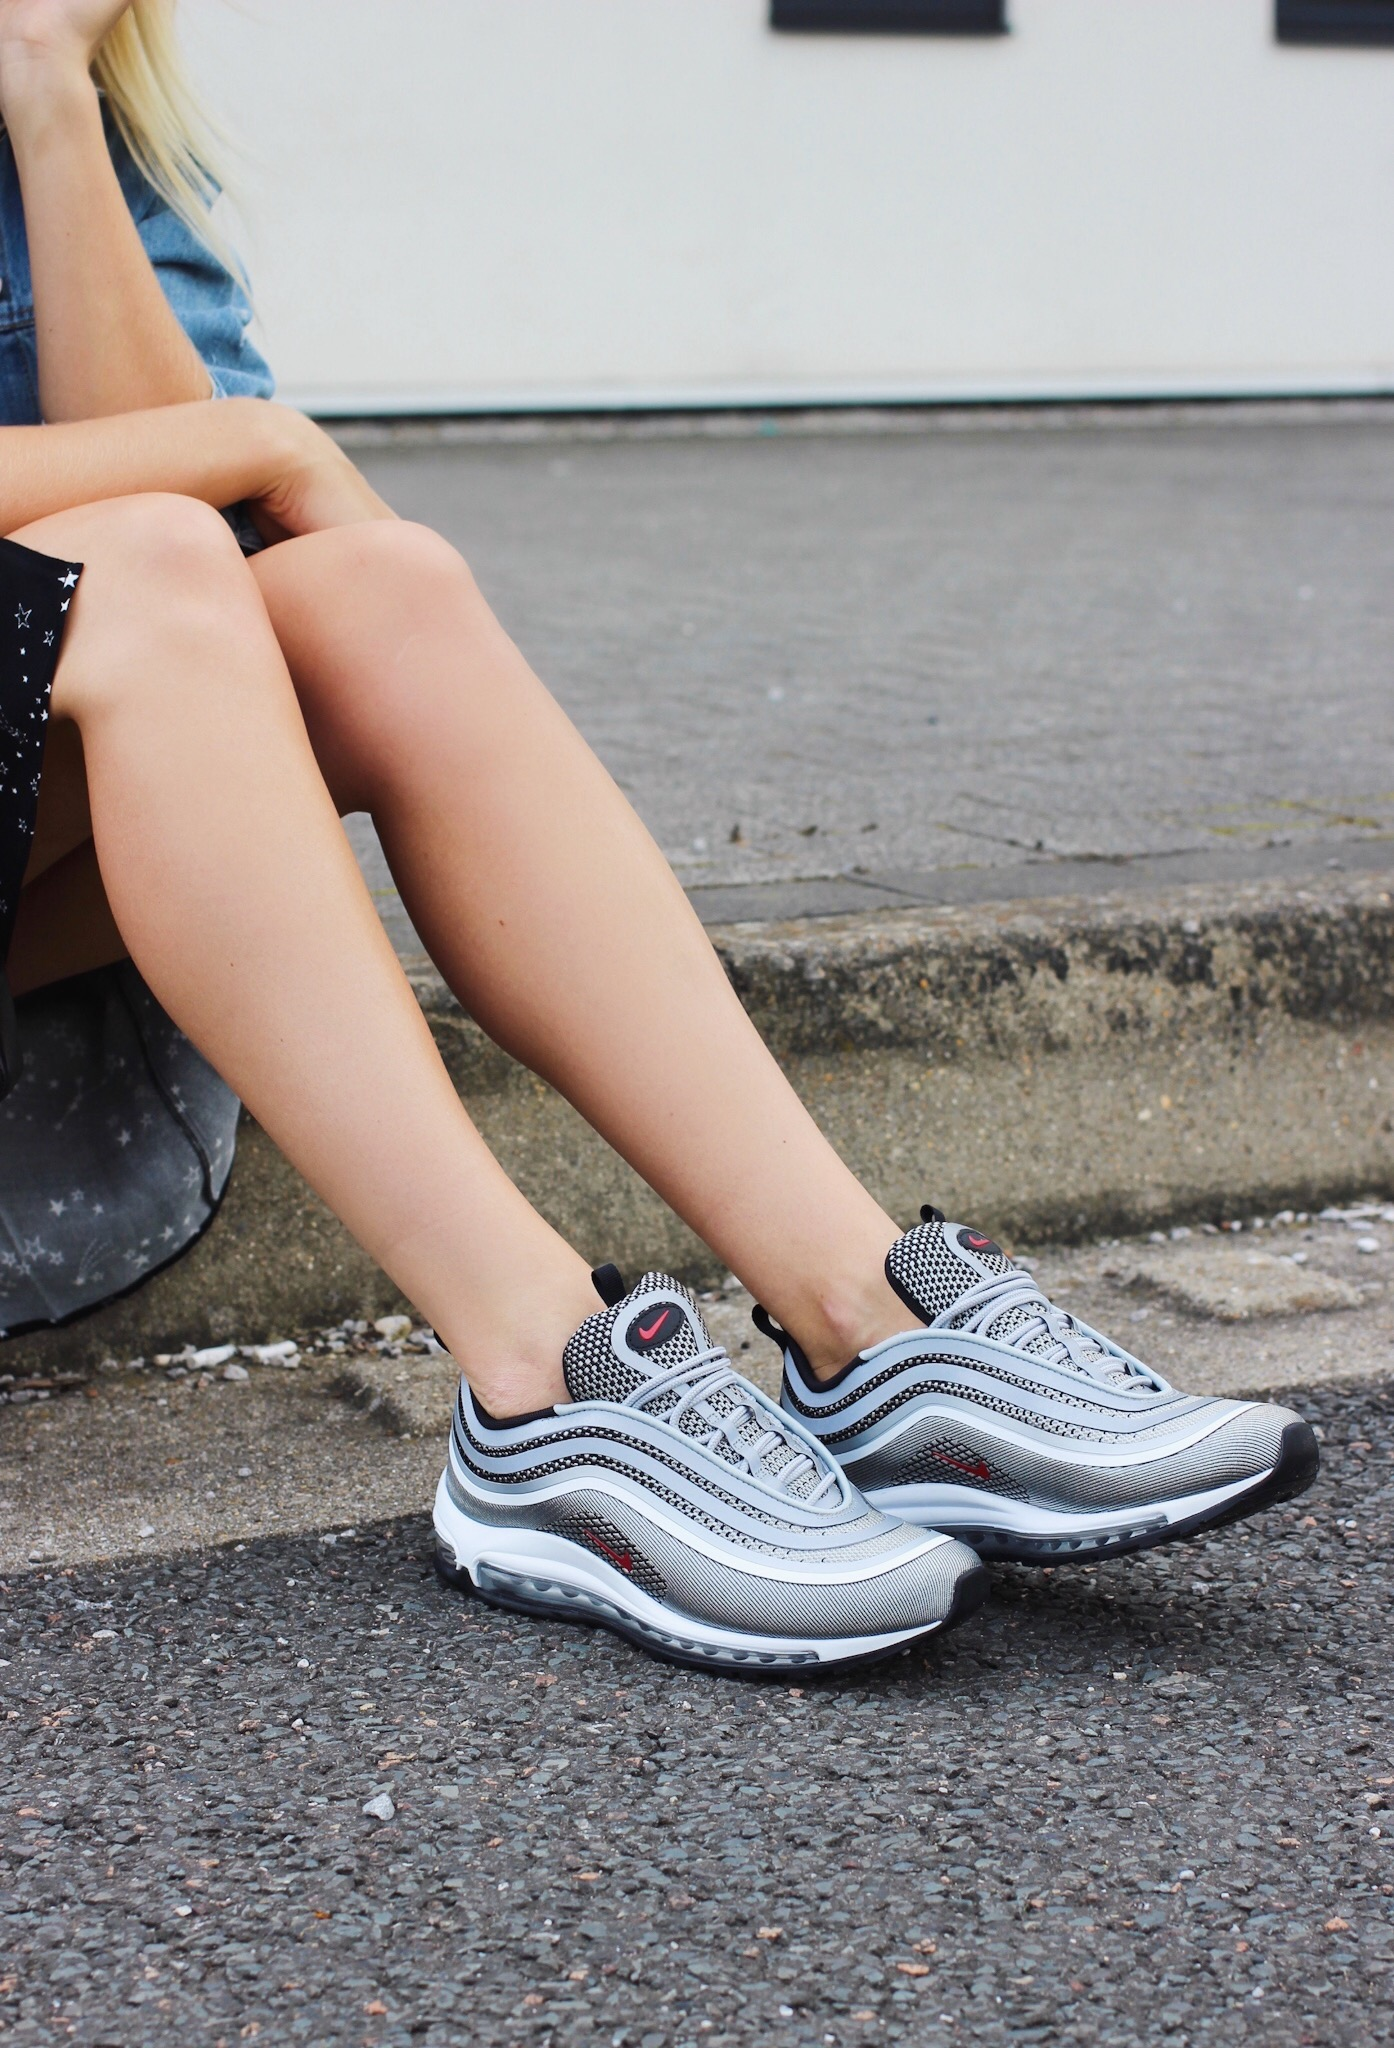 d20635f488 Nike Air Max 97 Womens Street Style Silver Bullet — Styling By Charlotte